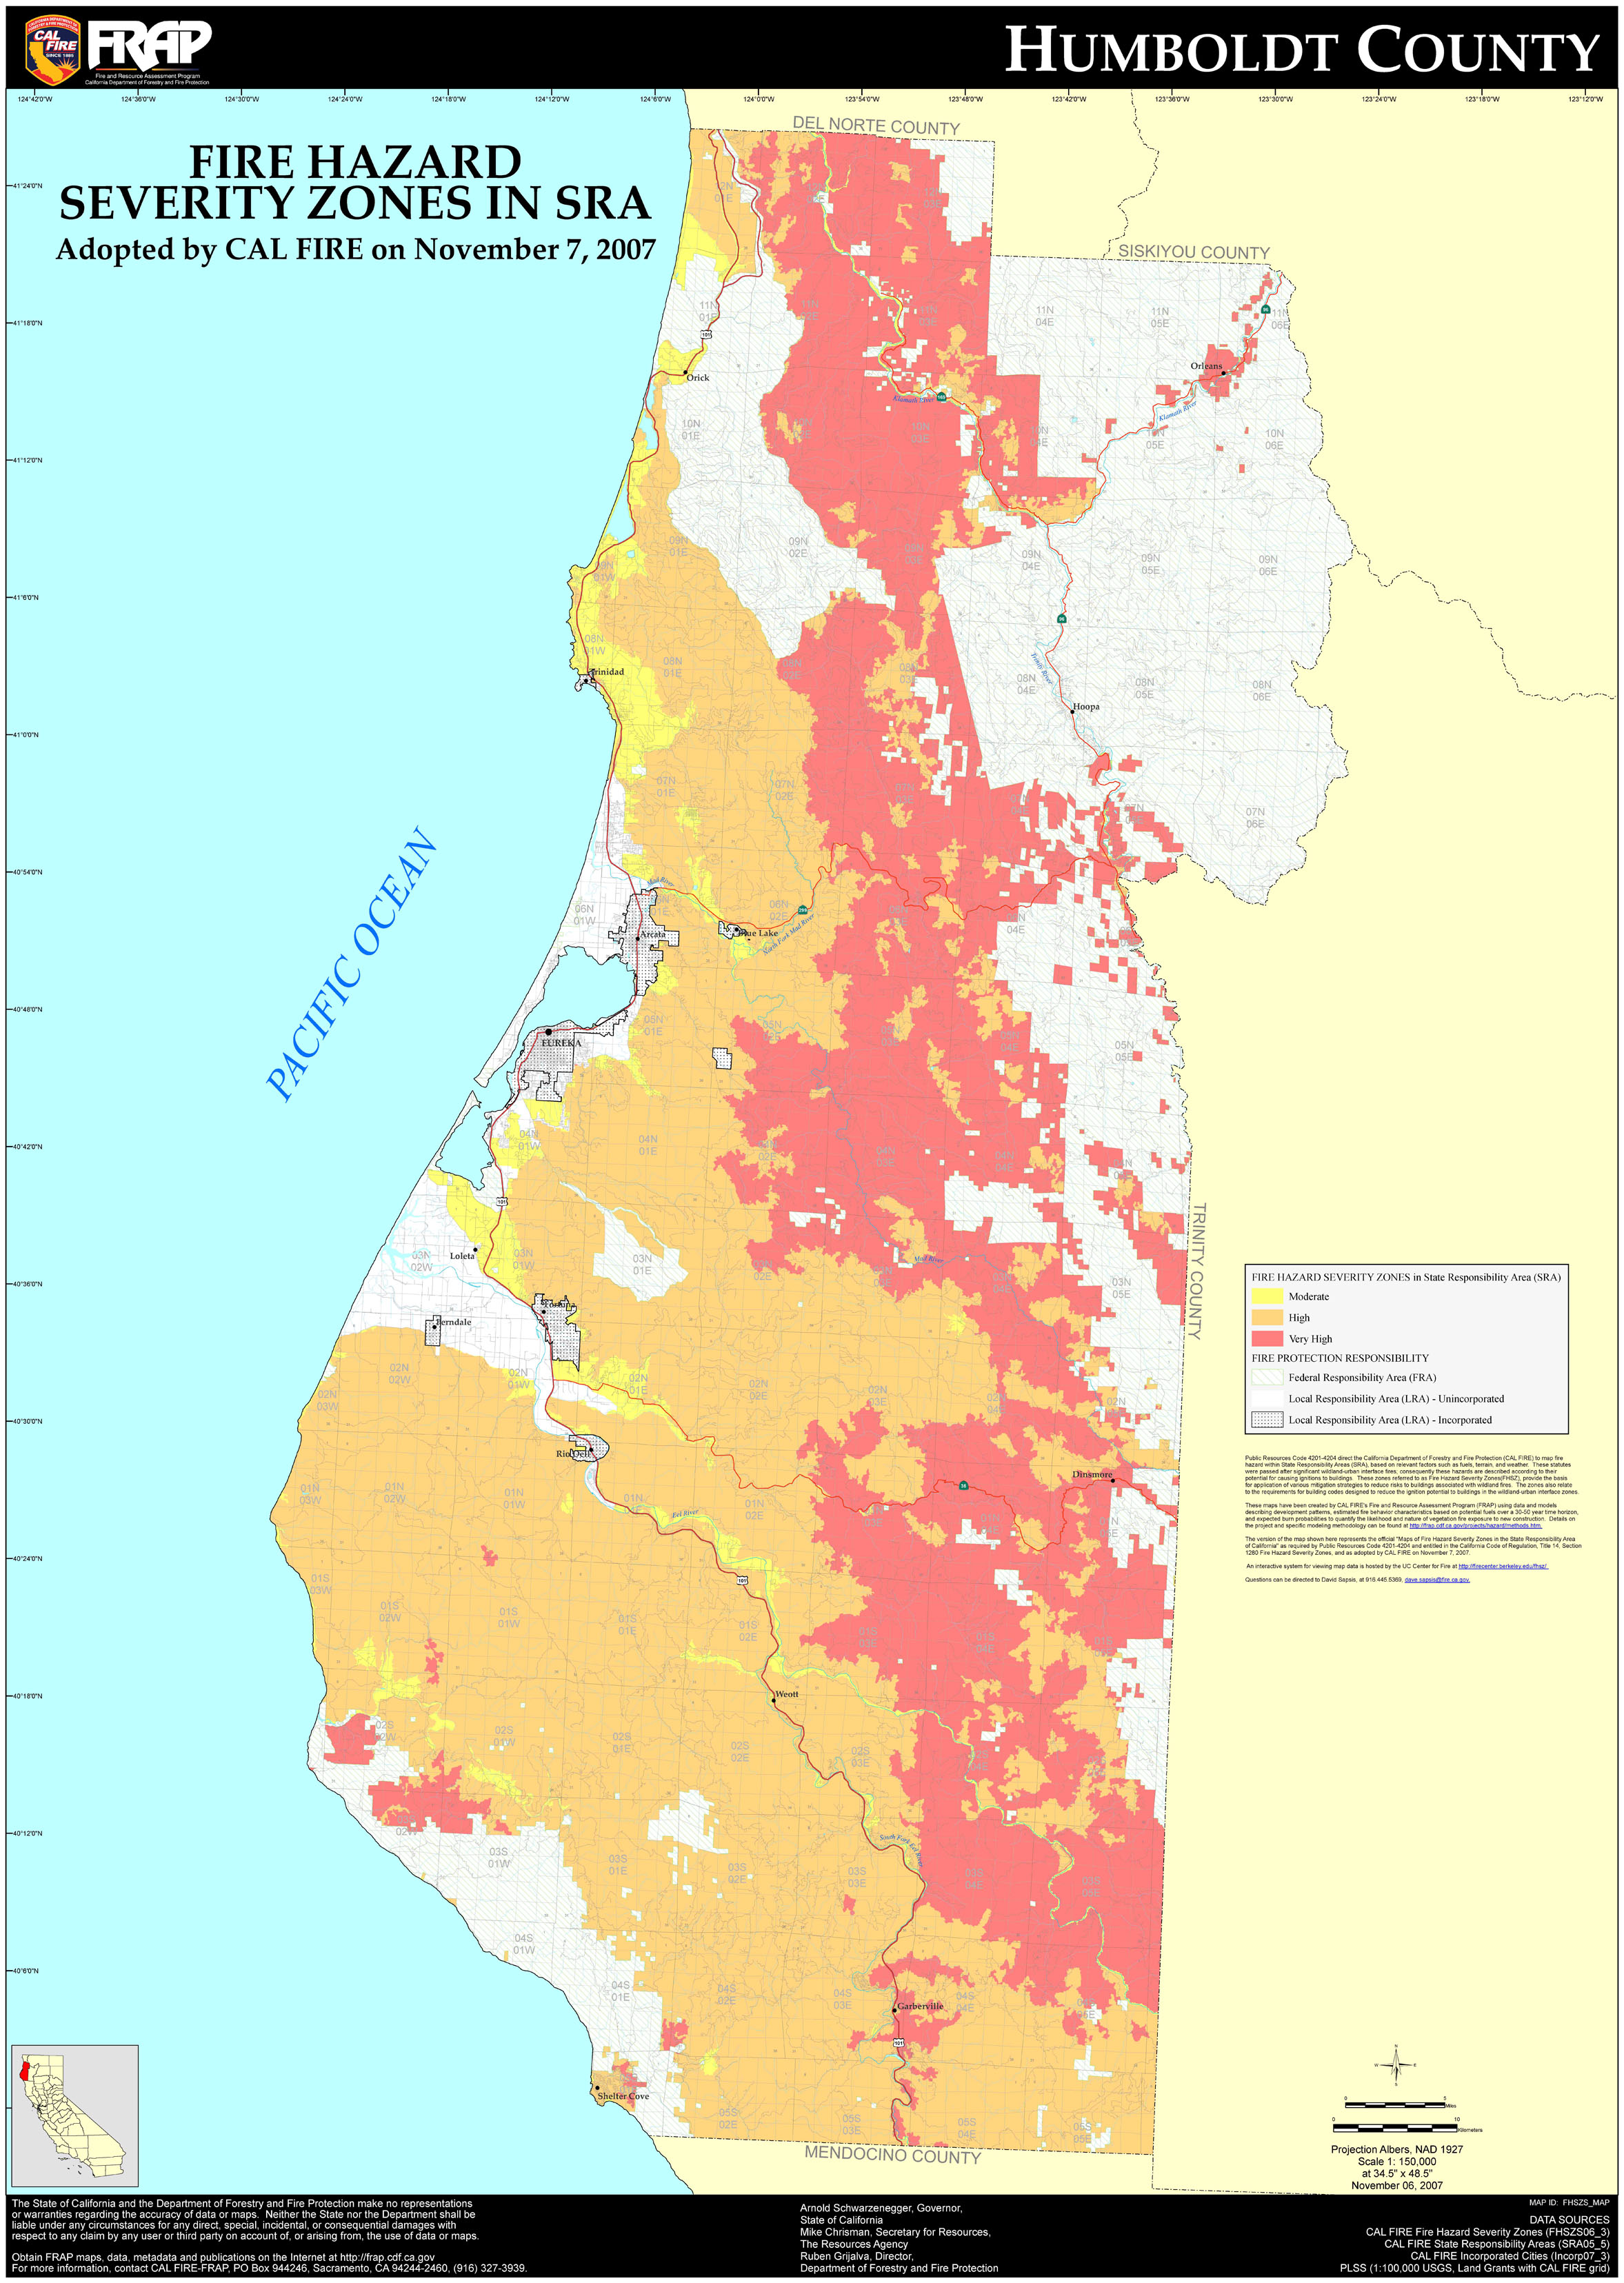 Map of Fire Hazard Zones in Humboldt County